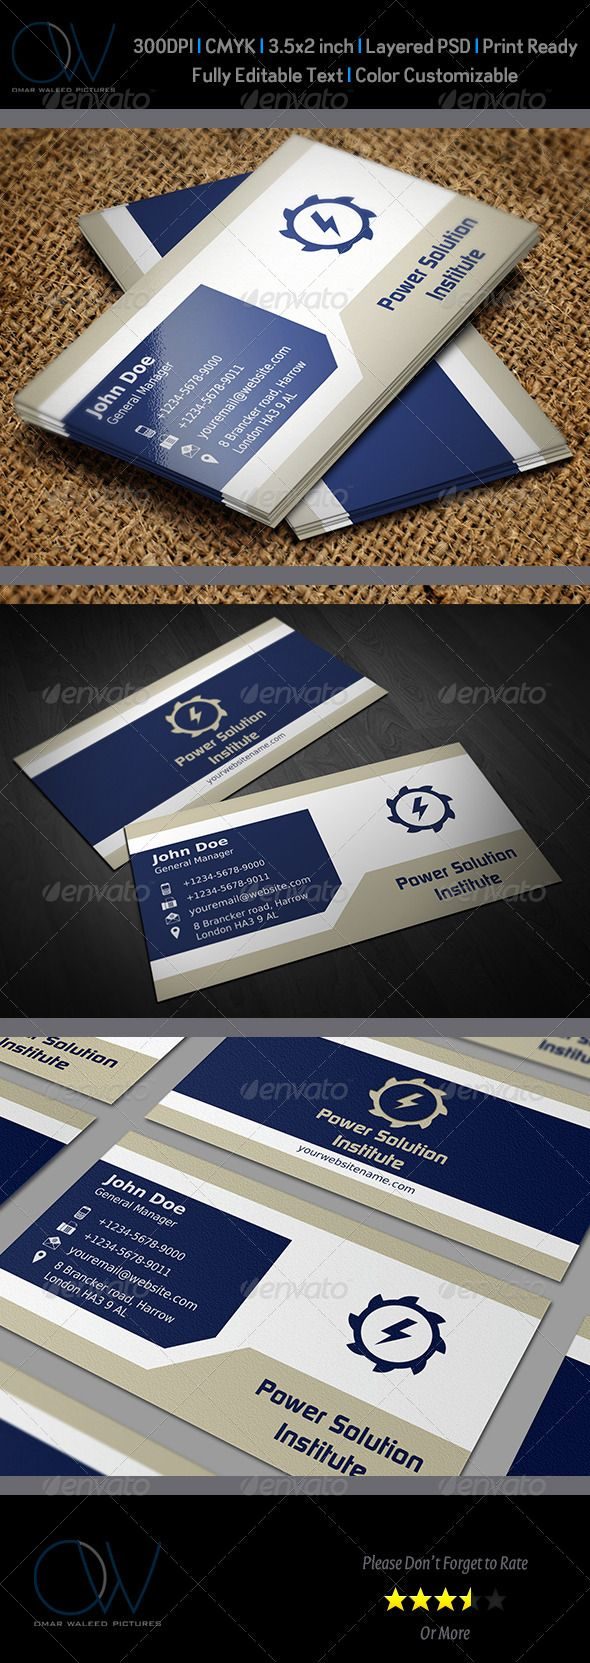 120 best business card images on pinterest business cards corporate business card template vol39 reheart Images